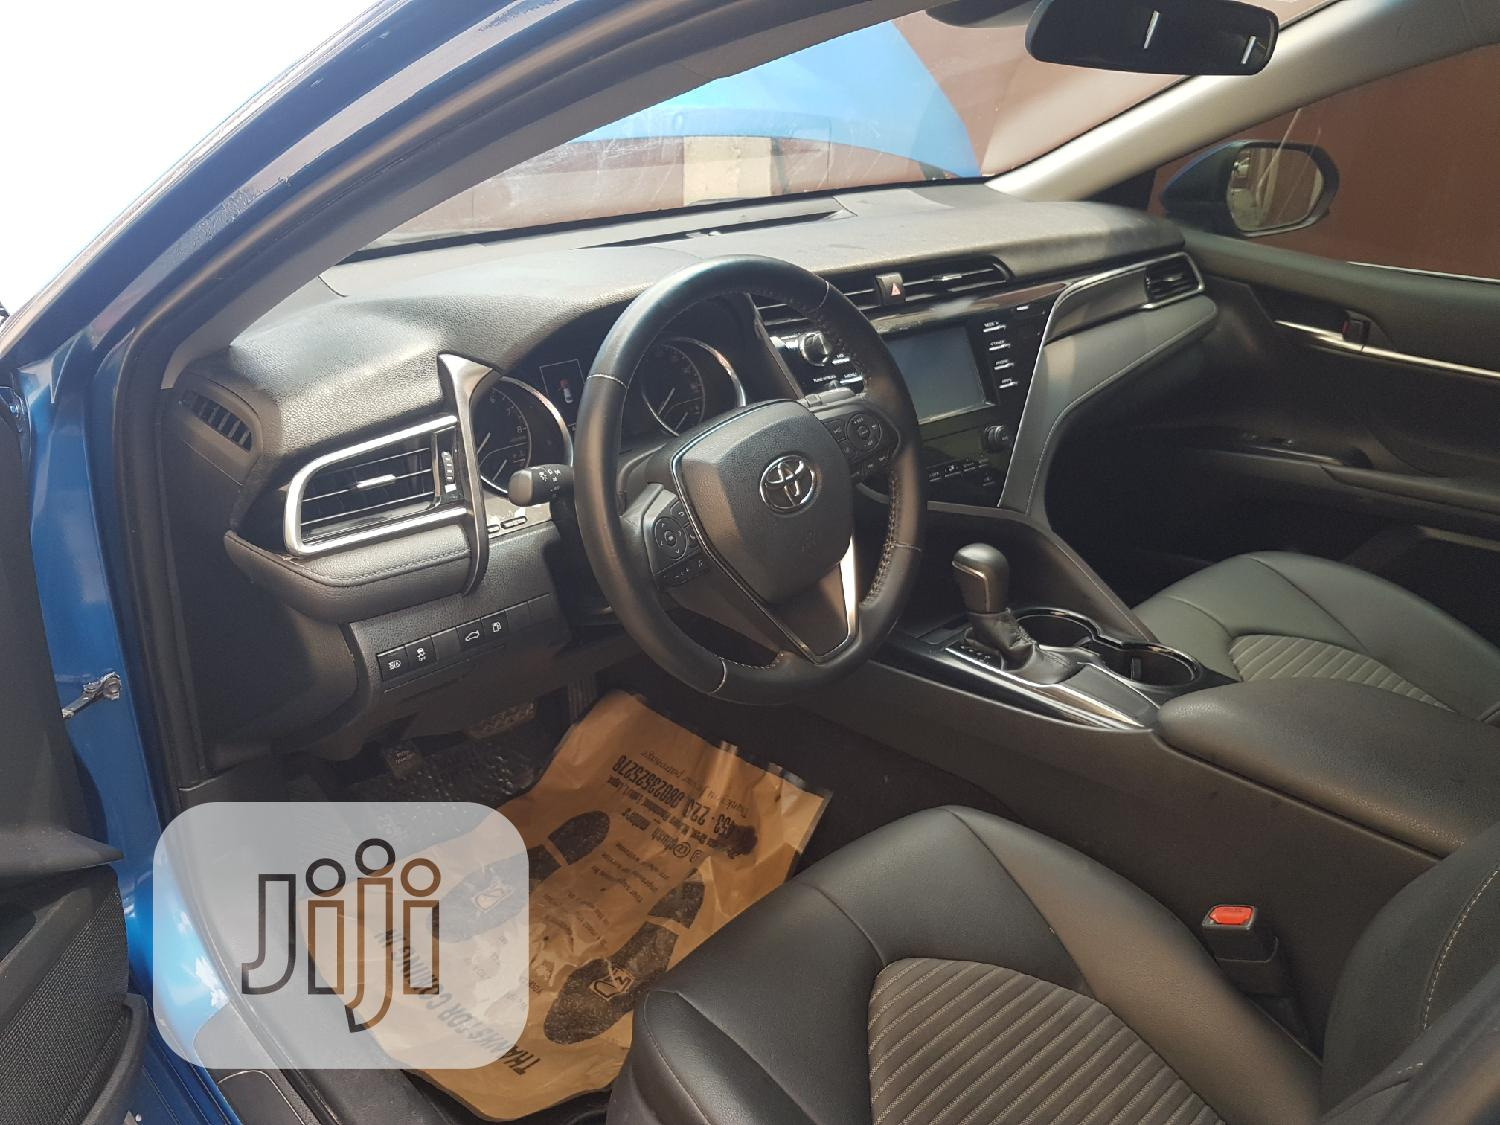 Toyota Camry 2018 SE FWD (2.5L 4cyl 8AM) Blue | Cars for sale in Lekki, Lagos State, Nigeria